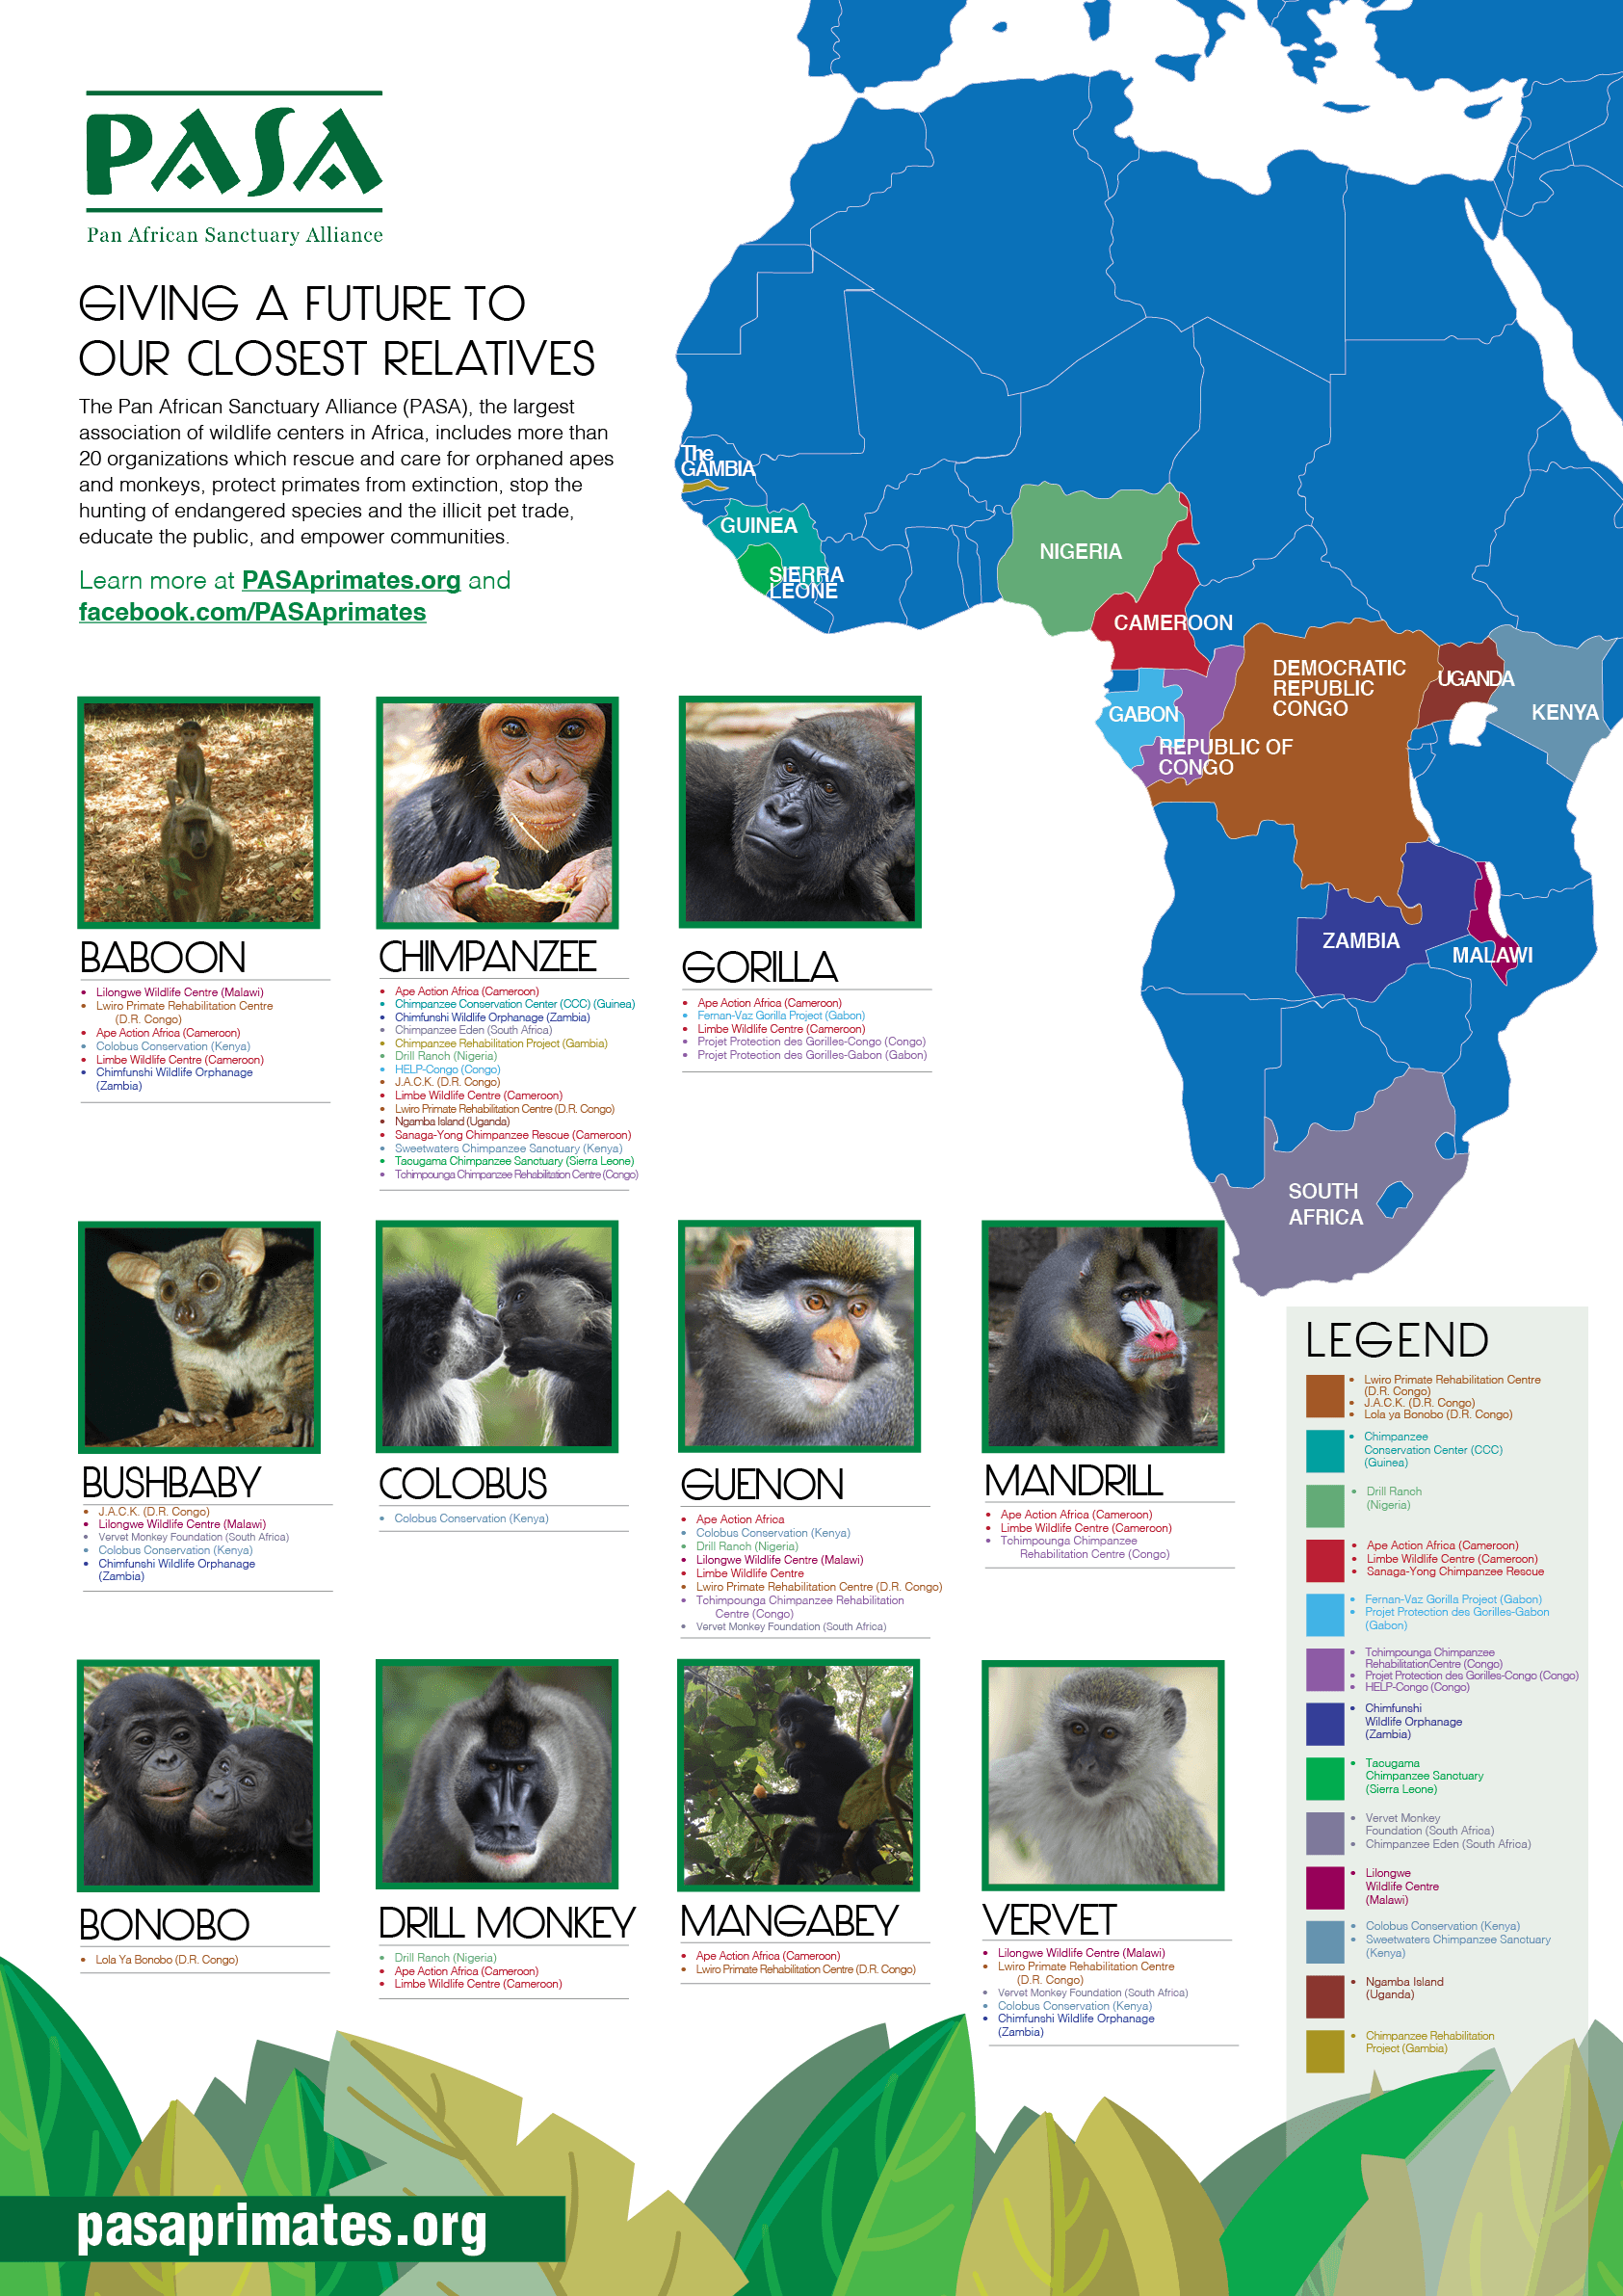 Hope for Future. BAboon, Chimpanzee, Gorilla, Bush Baby, Columbus, Guenon, Mandrill, Bonobo, Drill Monkey, Mangabey, Vervet.